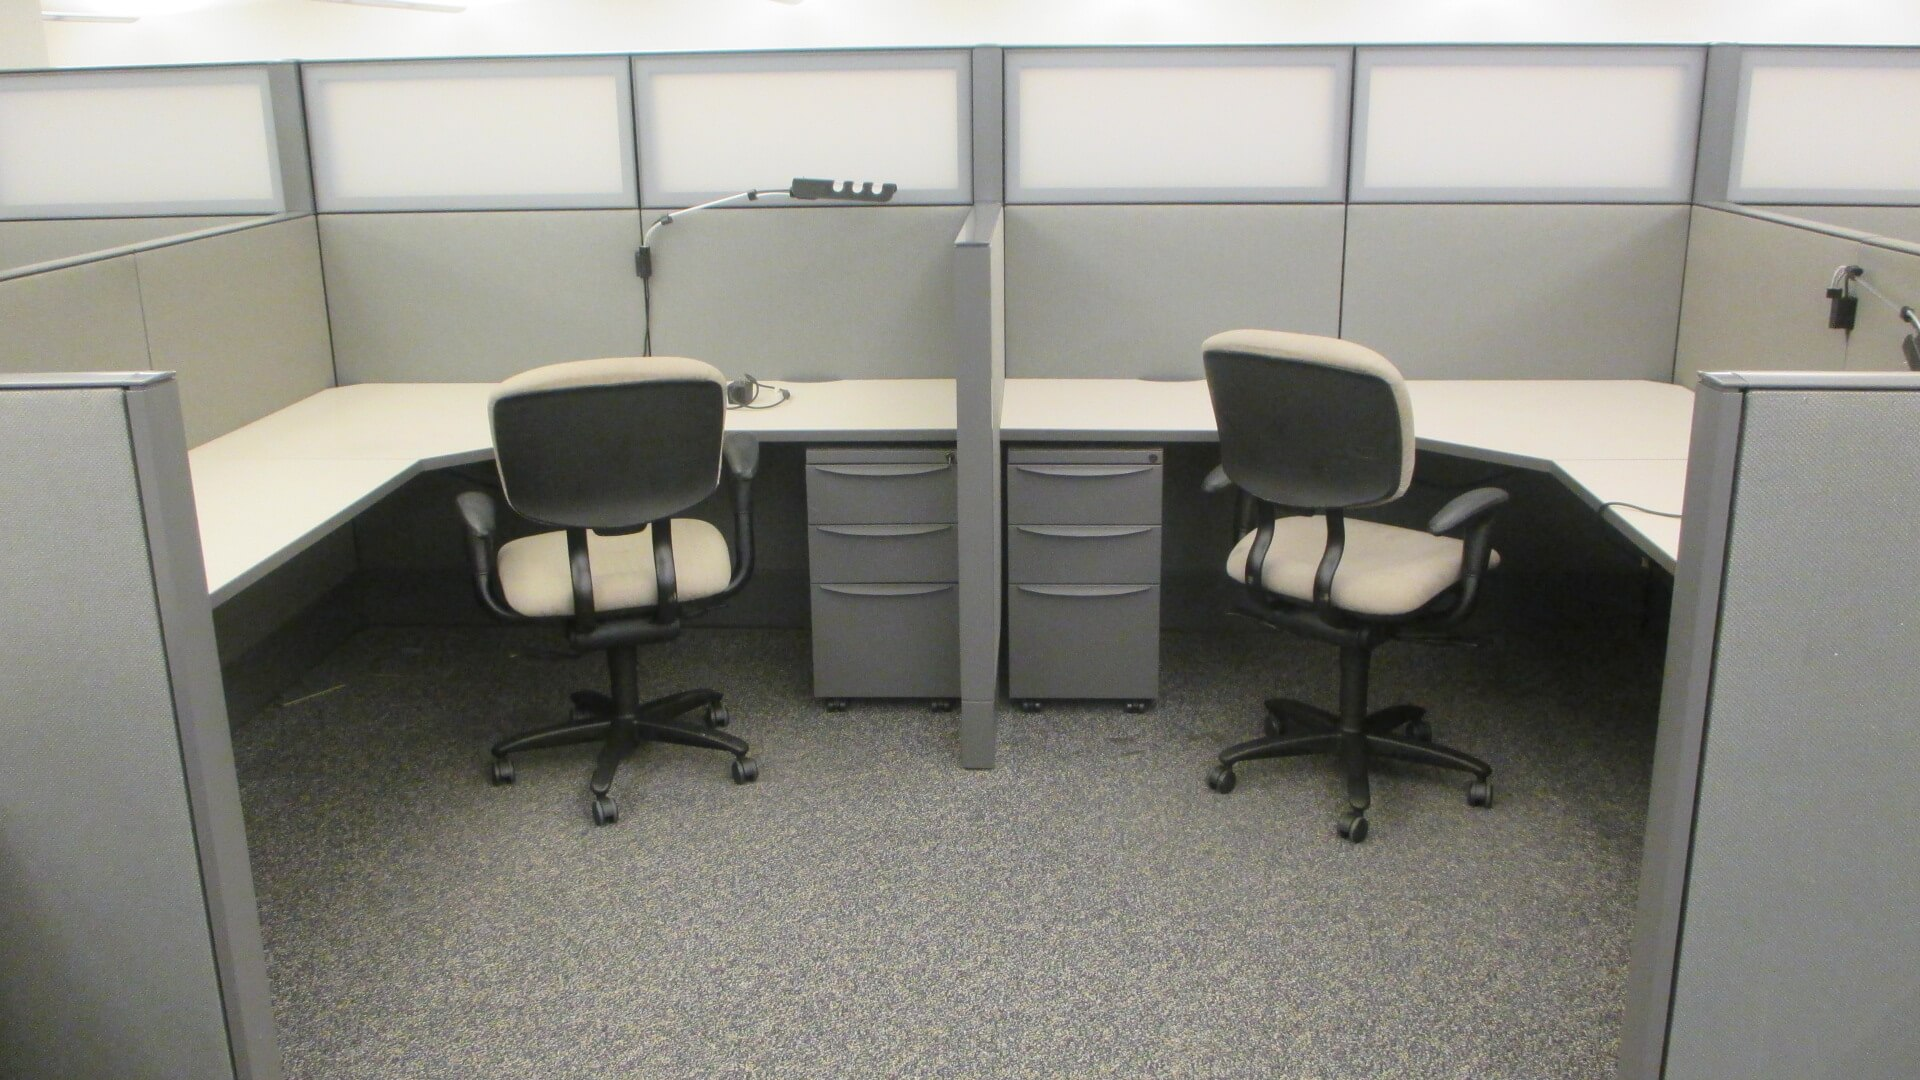 office cubicles walls. Used Cubicles #071516-2 Office Walls S